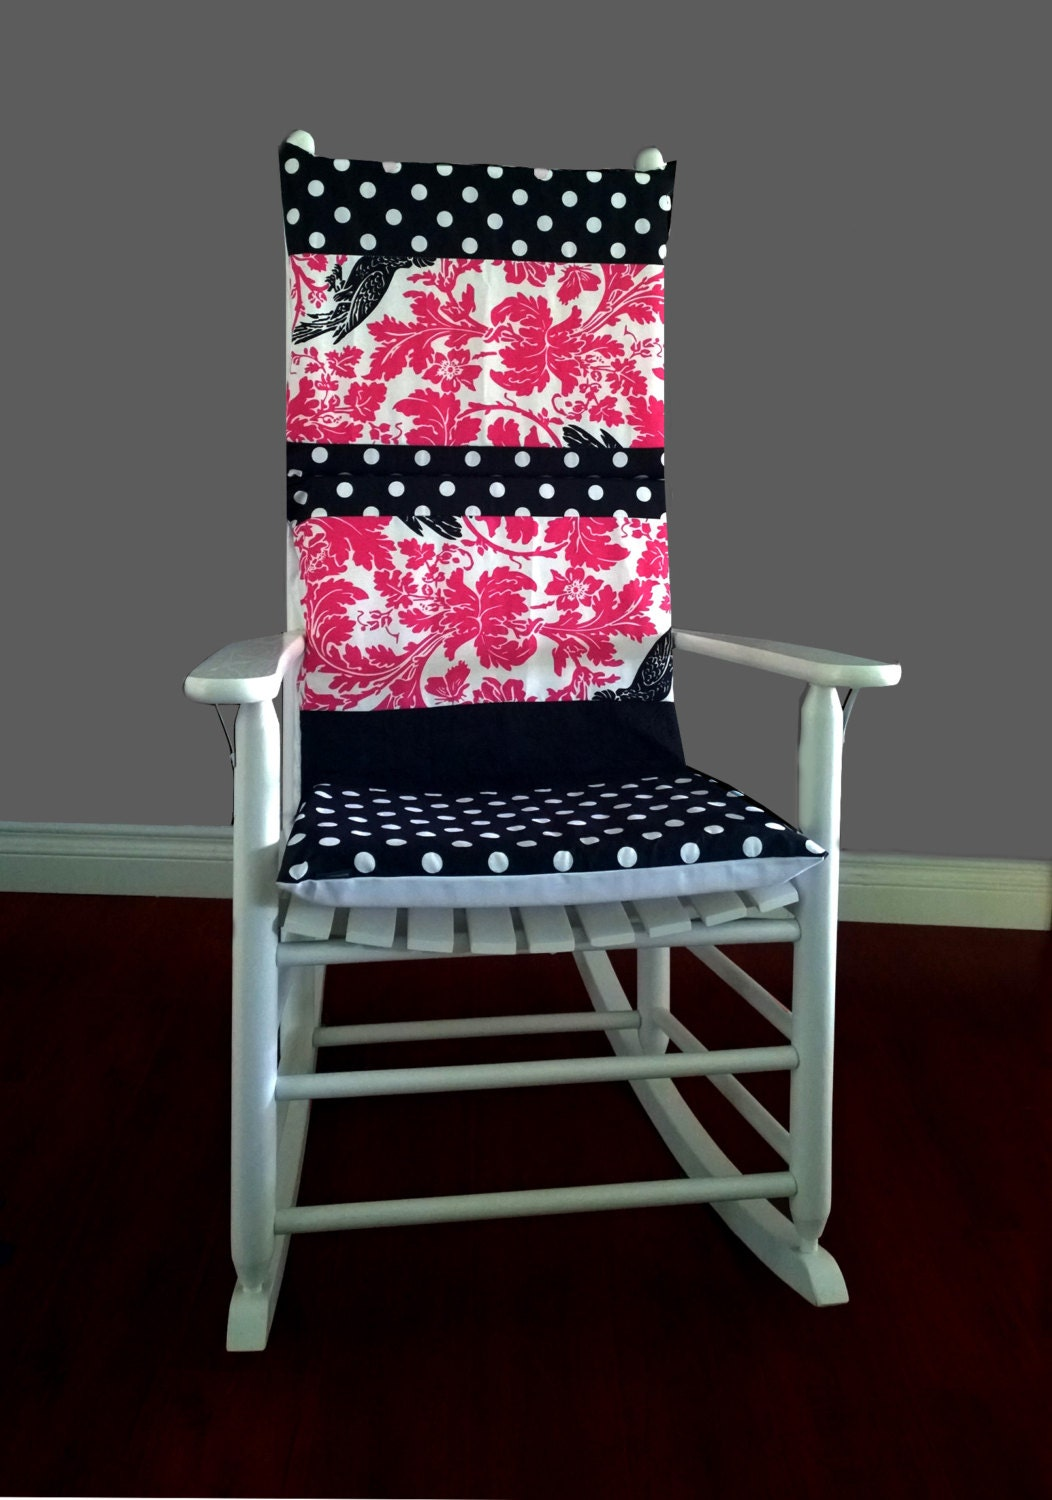 Rocking Chair Cushion Cover Barber Pink Black by RockinCushions